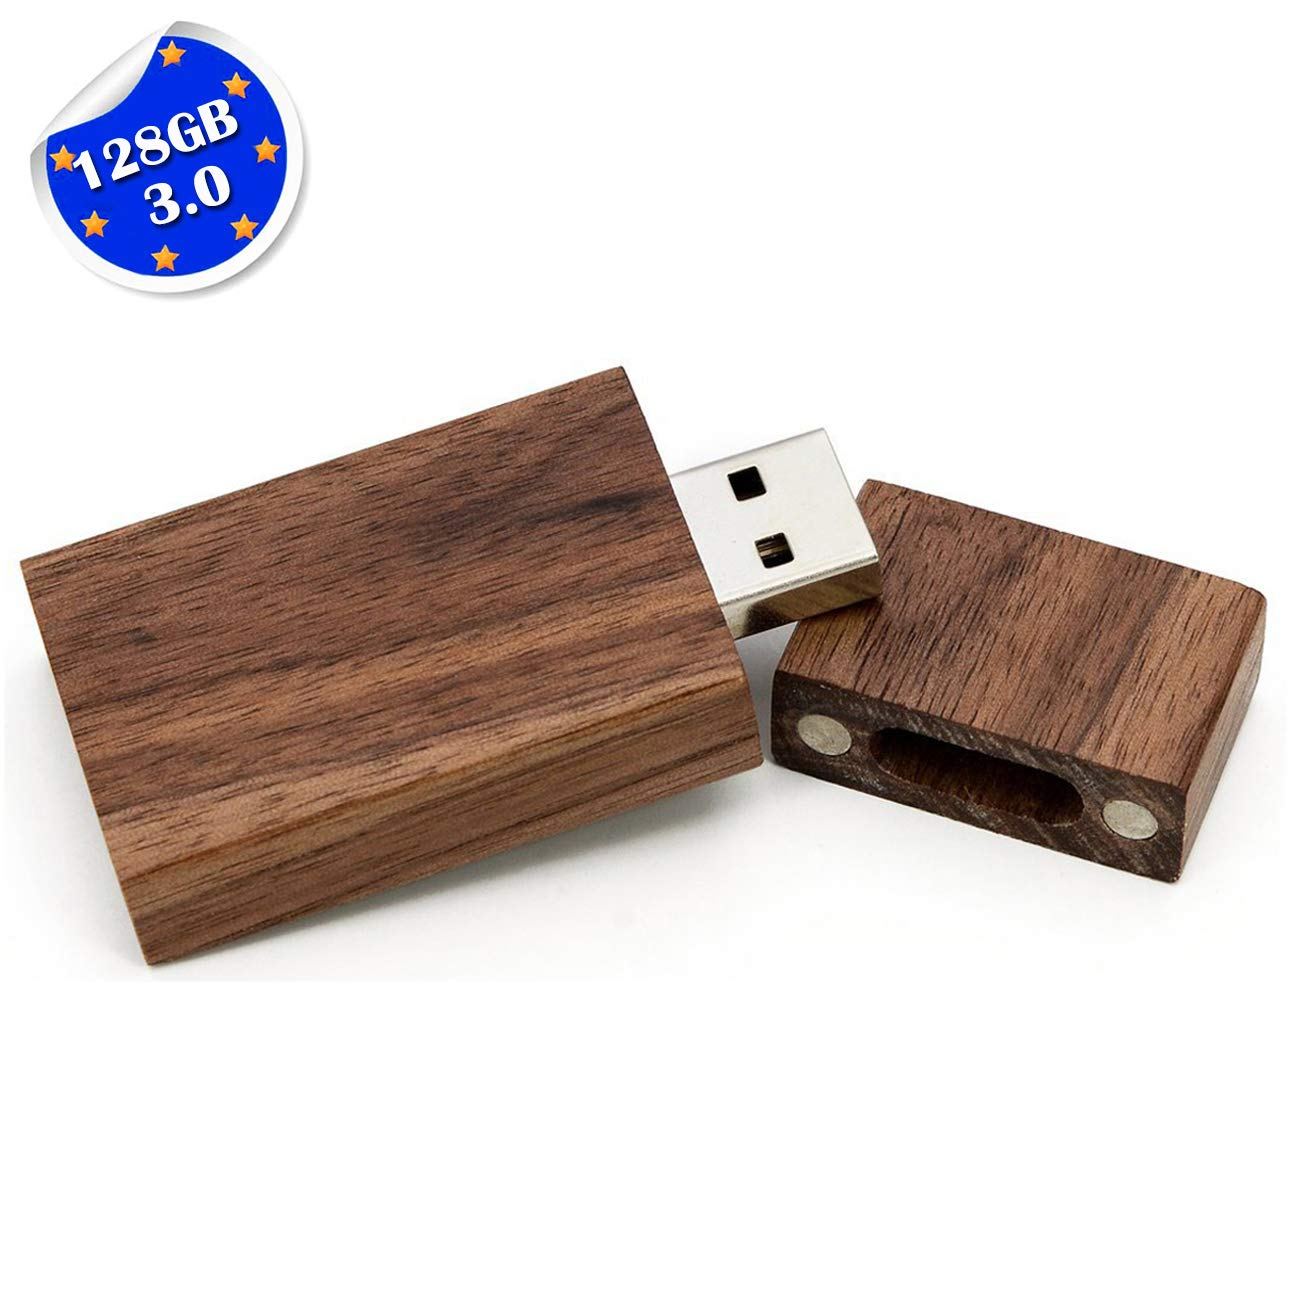 128GB Wooden Flash Drive USB 3.0, EASTBULL High Speed Walnut Wood USB Flash Drive Thumb Drive Memory Stick with Wood Box (Dark Brown-1PCS)